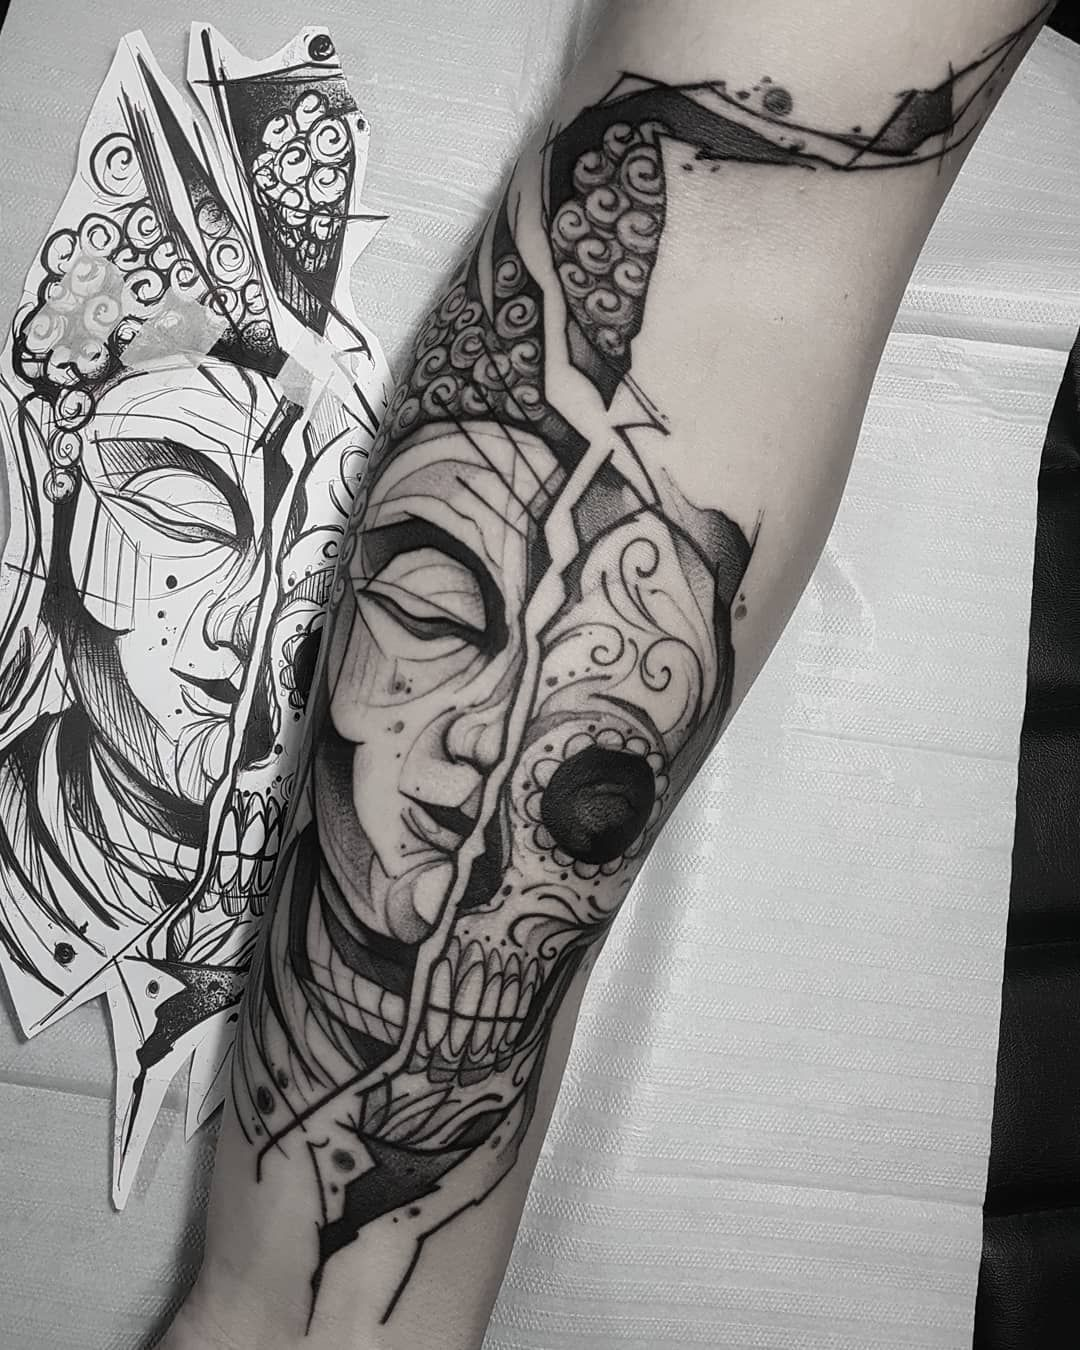 50+ Best Types of tattoos that age well ideas